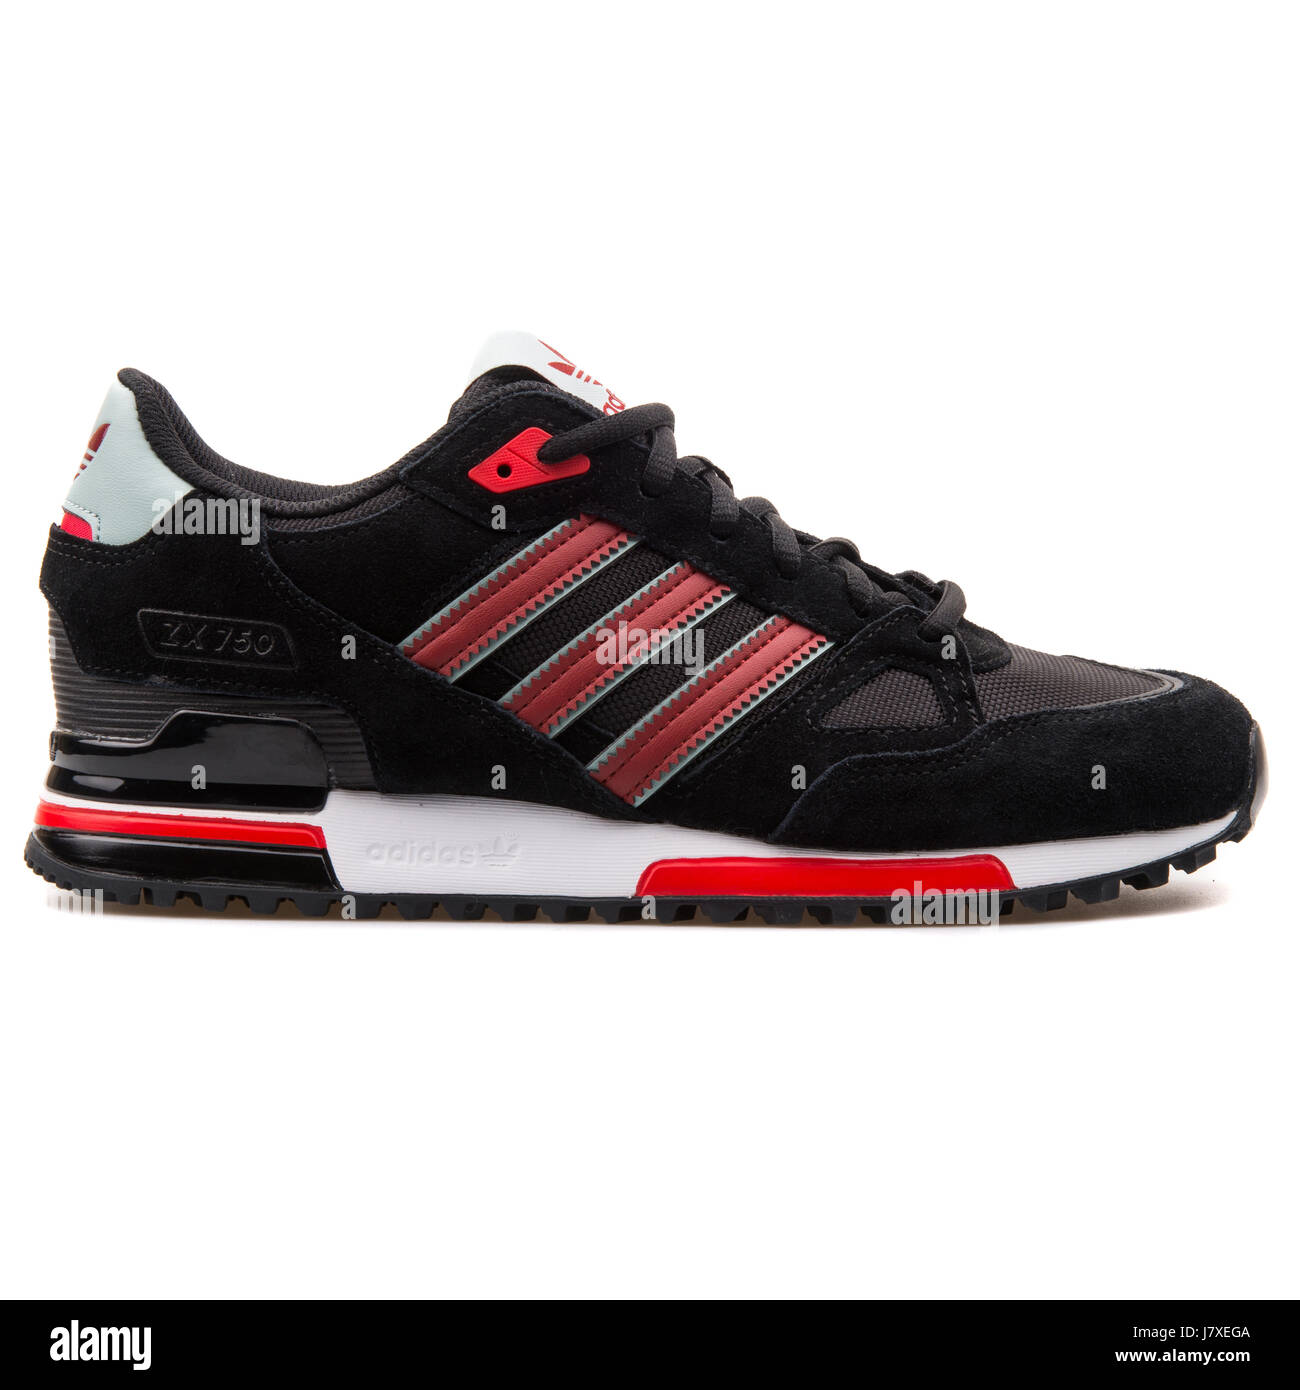 sports shoes 6b28e e41e8 Adidas ZX 750 Men's Black with Red Sneakers - B24856 Stock ...